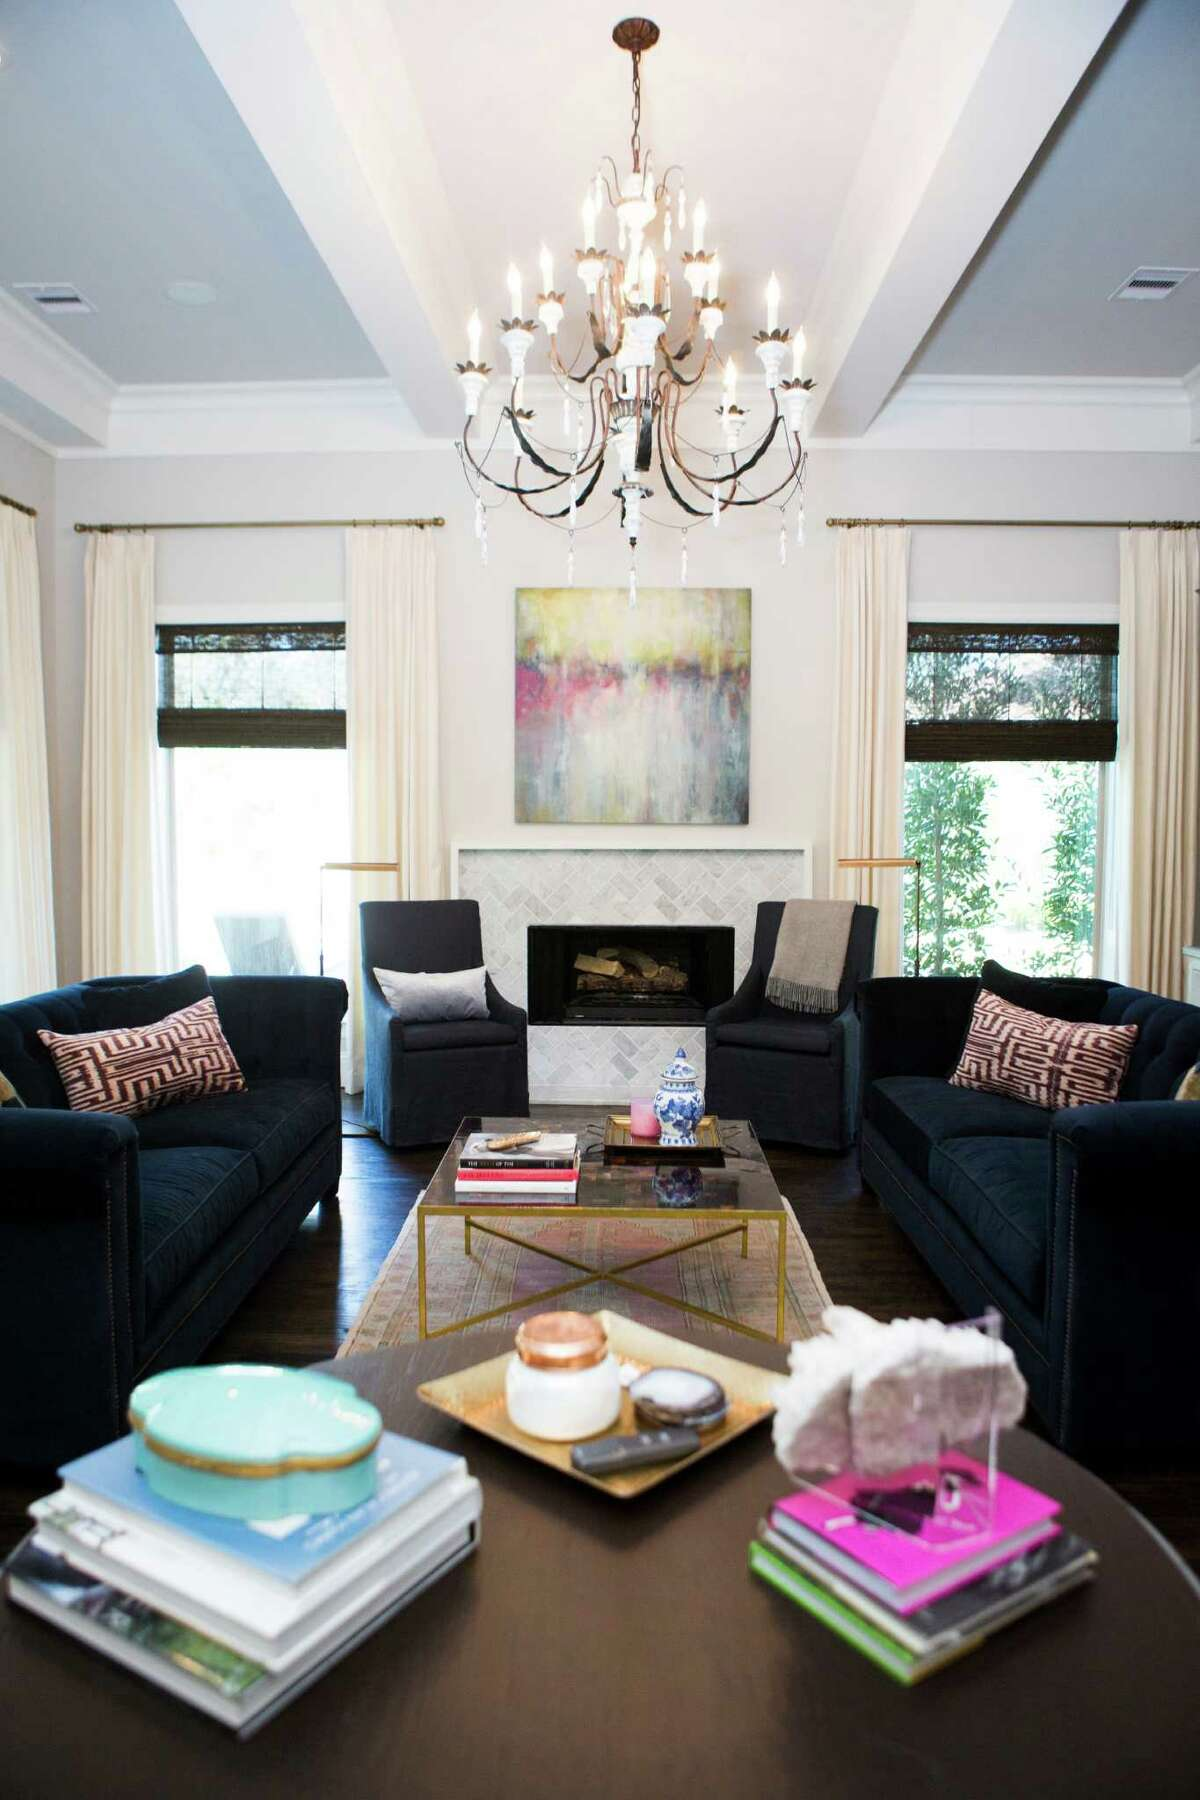 OR SKIP THE TV: The living room in this home has a soothing symmetry and plenty of seating. Designed to promote conversation, the room doesn't include a TV.